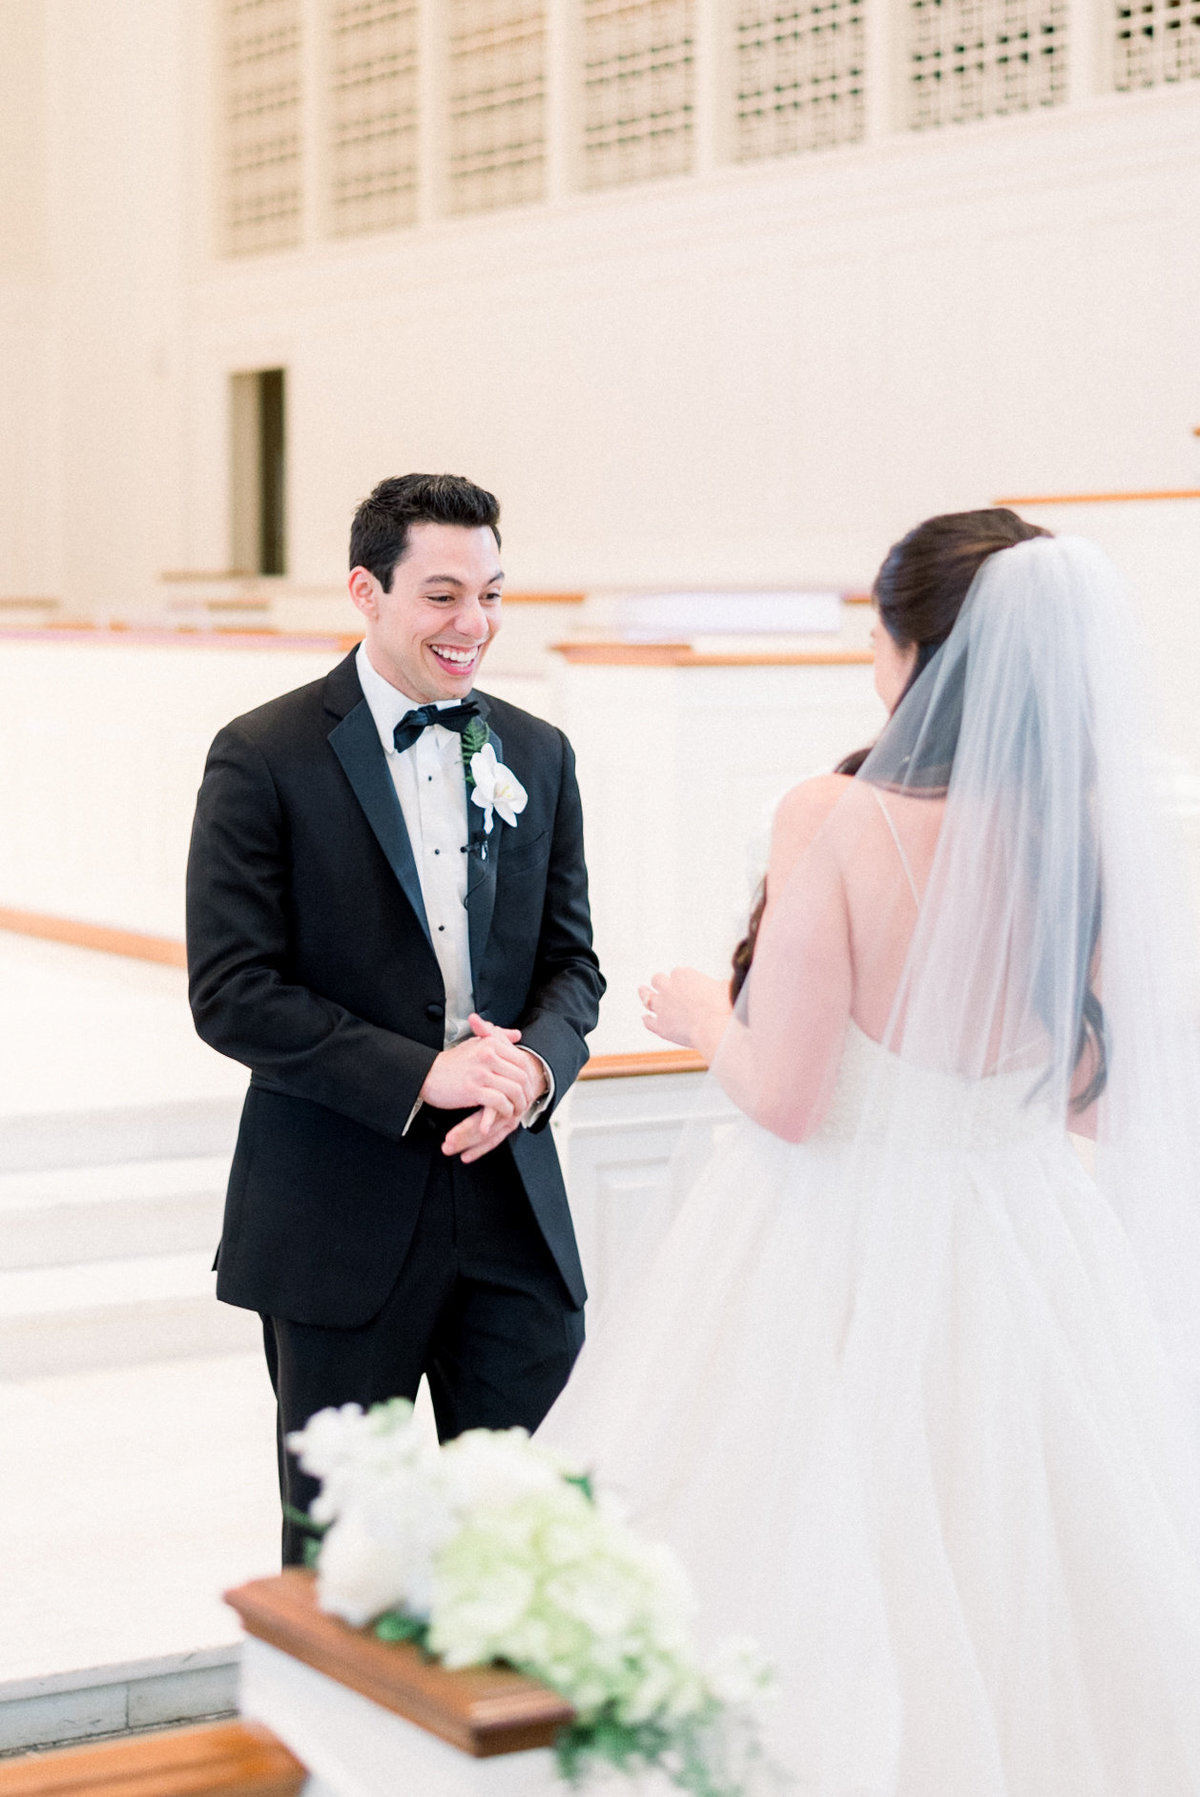 Canterbury Methodist Birmingham Museum of Art - Alabama Wedding Photographer10